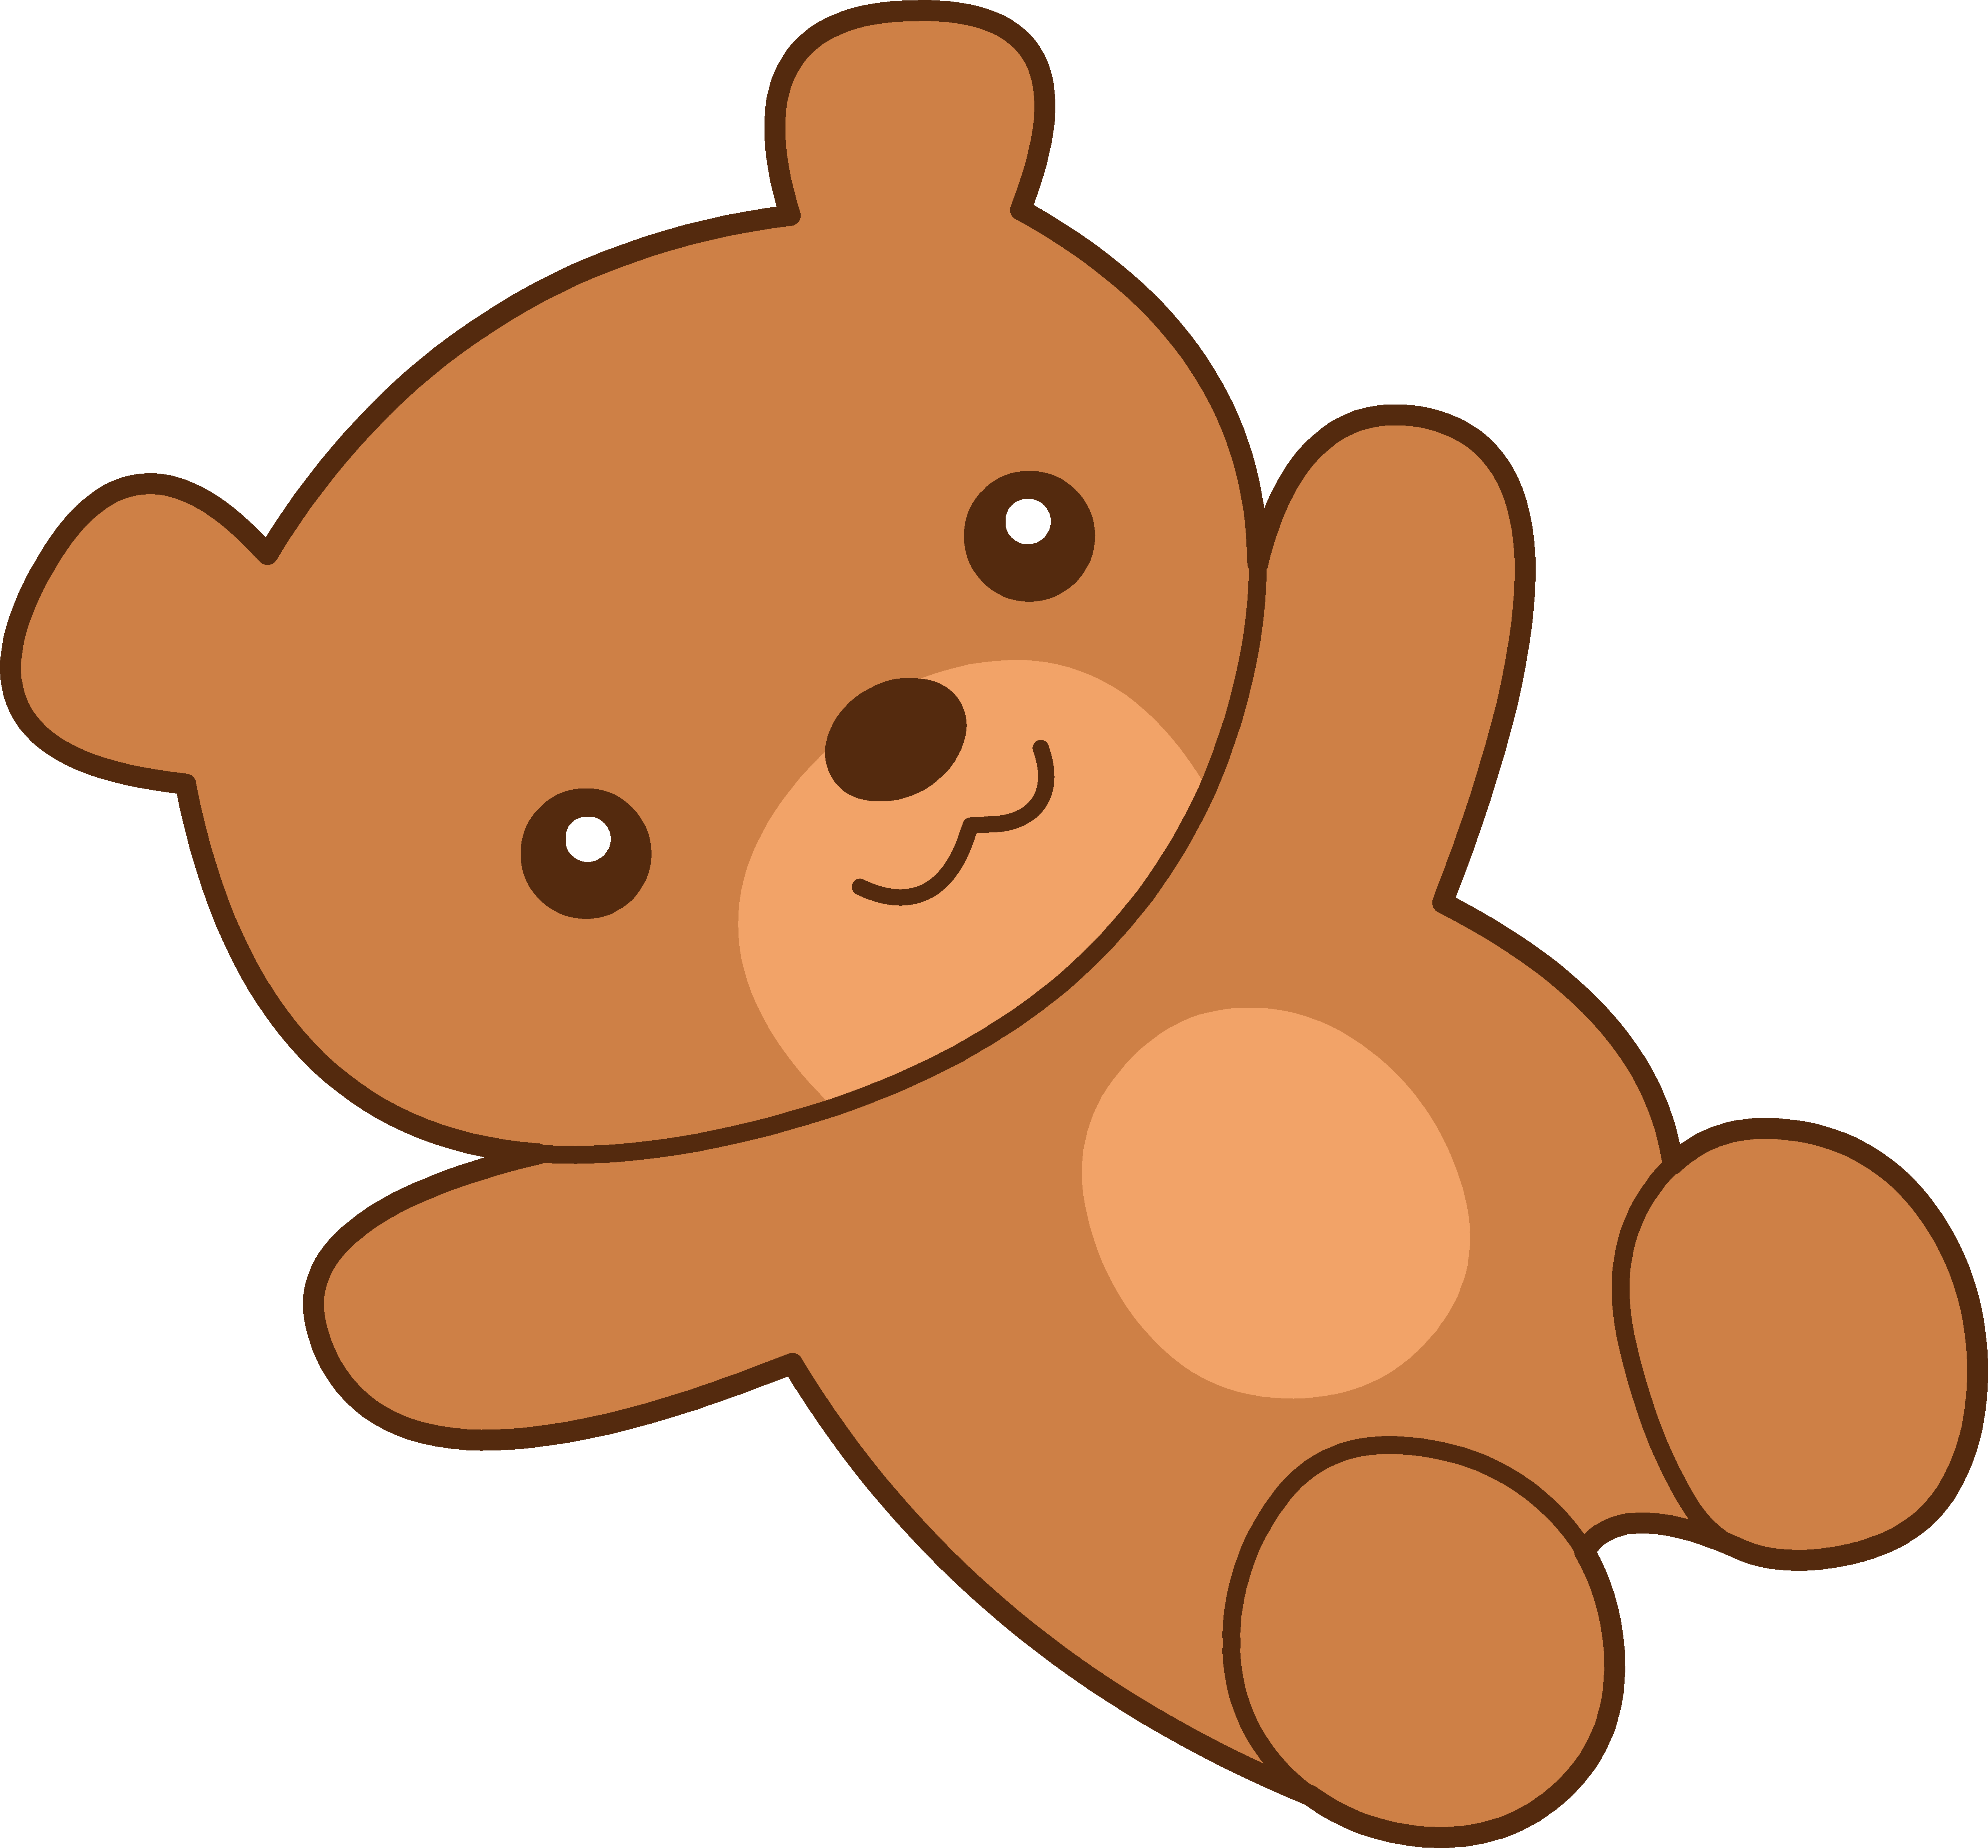 Teddy bear clipart free clipart images 3